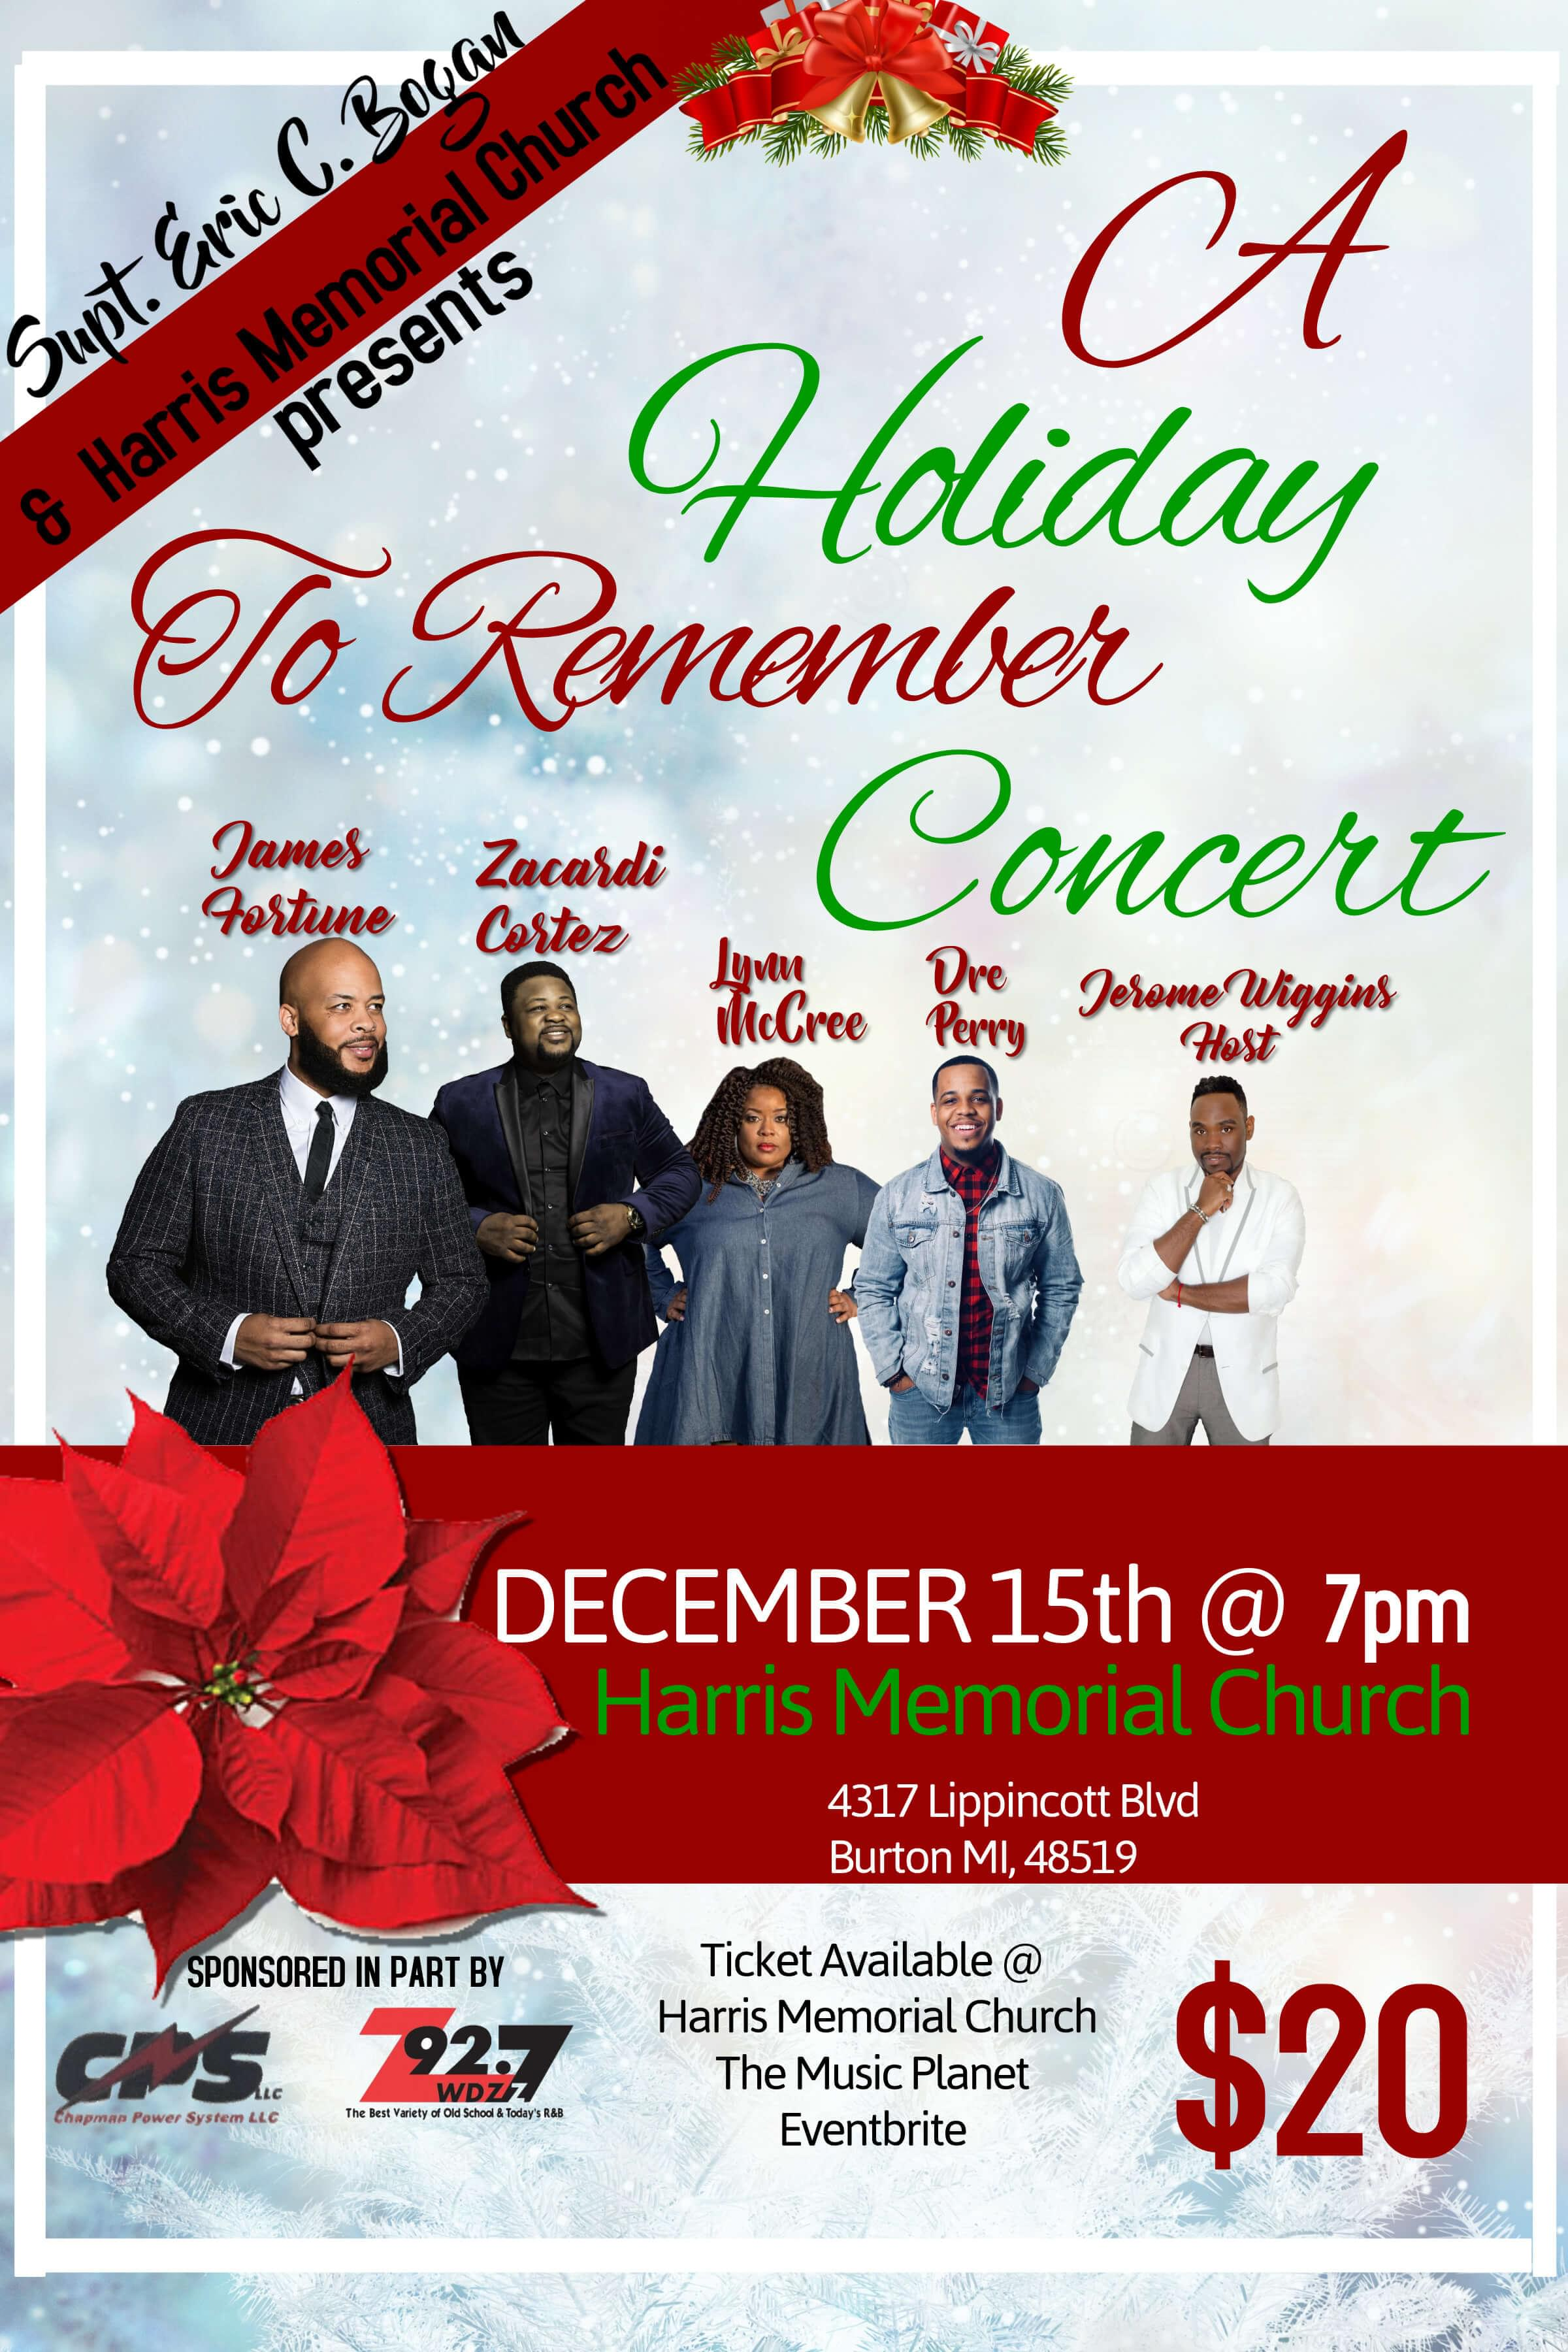 A Holiday to Remember Concert Tickets! | wdzz-fm